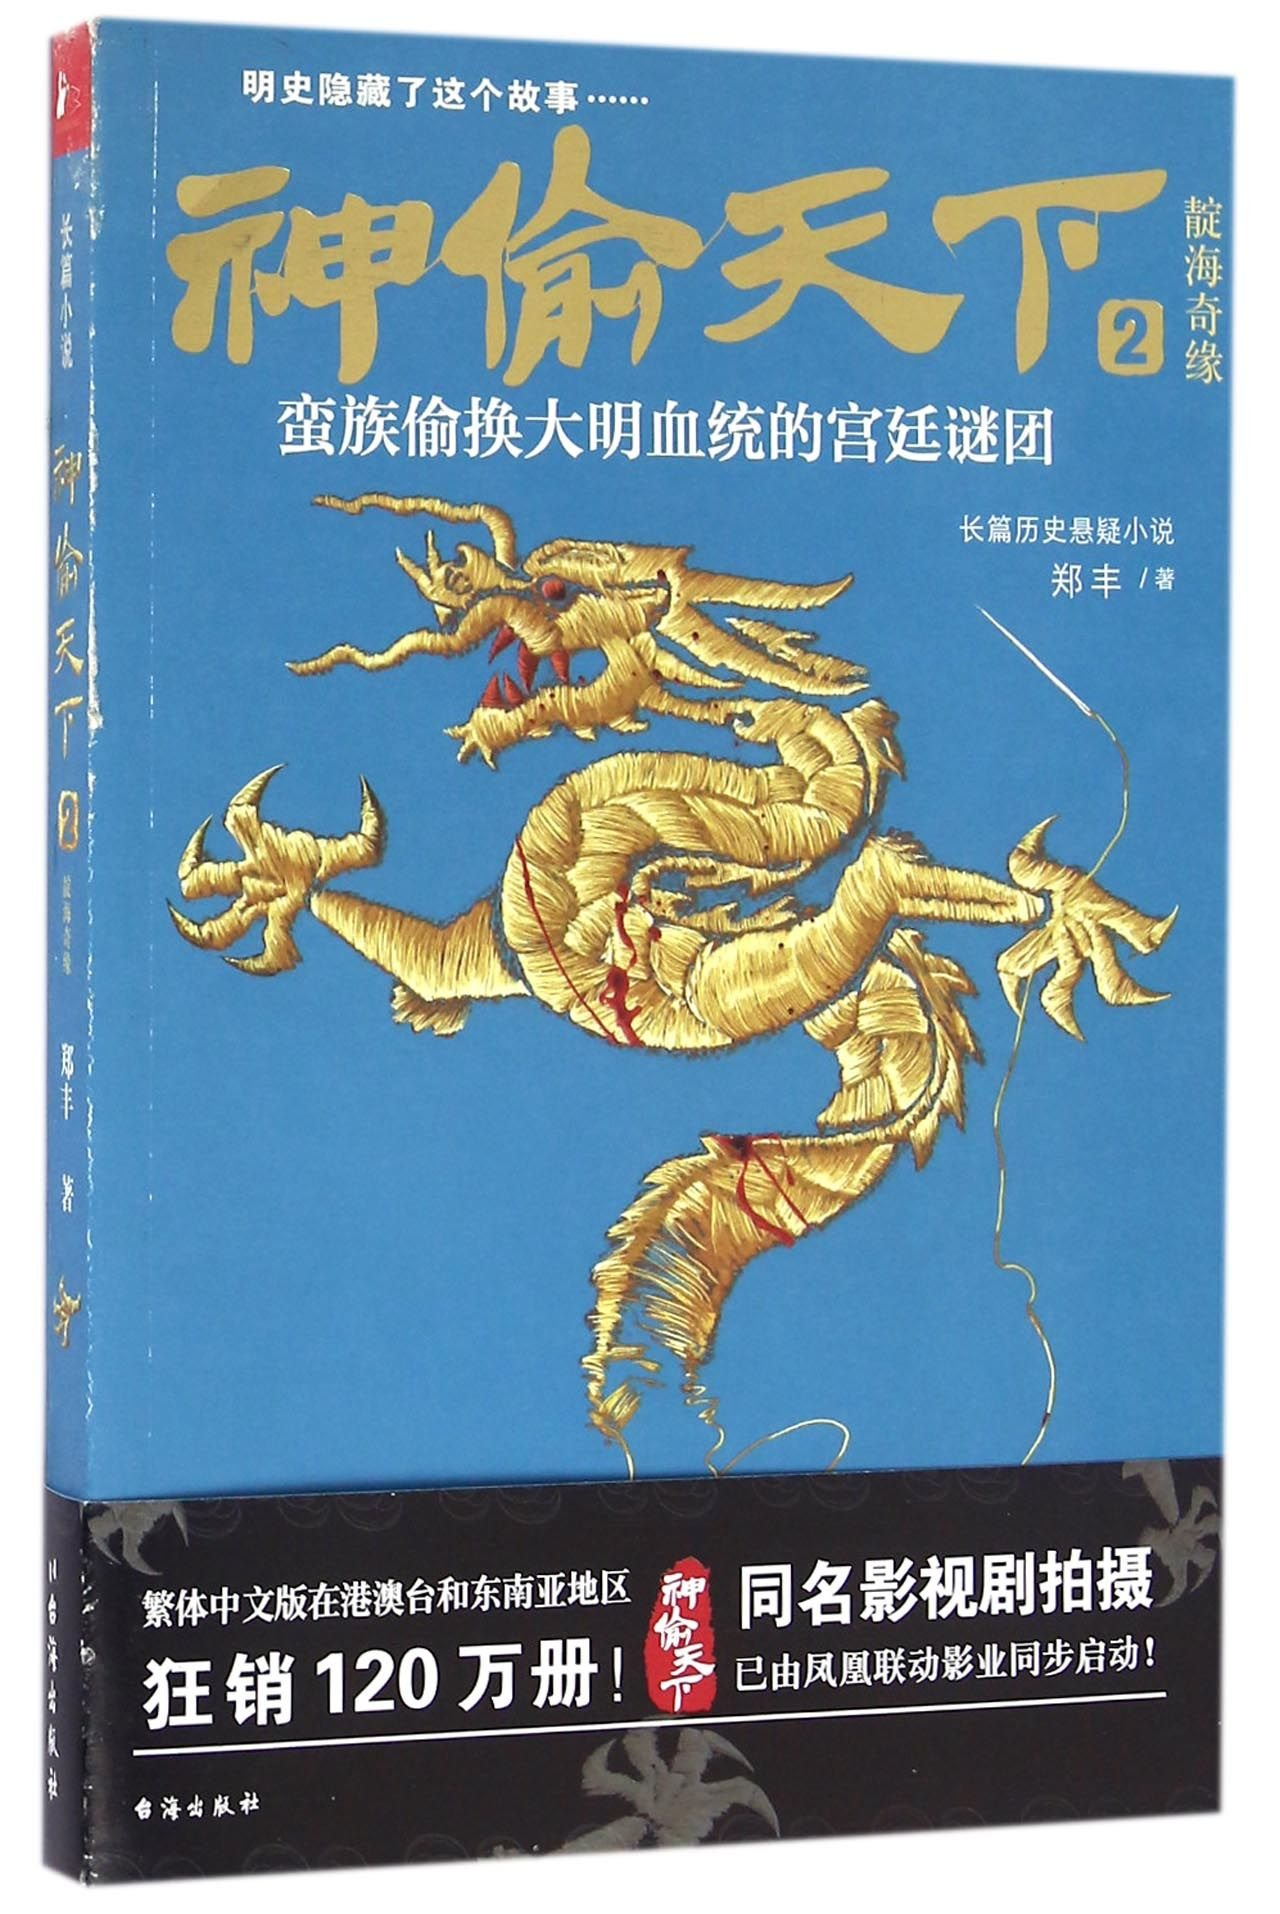 Download The World of Pickpockets 2: Strange Encounters in the Ocean (Chinese Edition) PDF